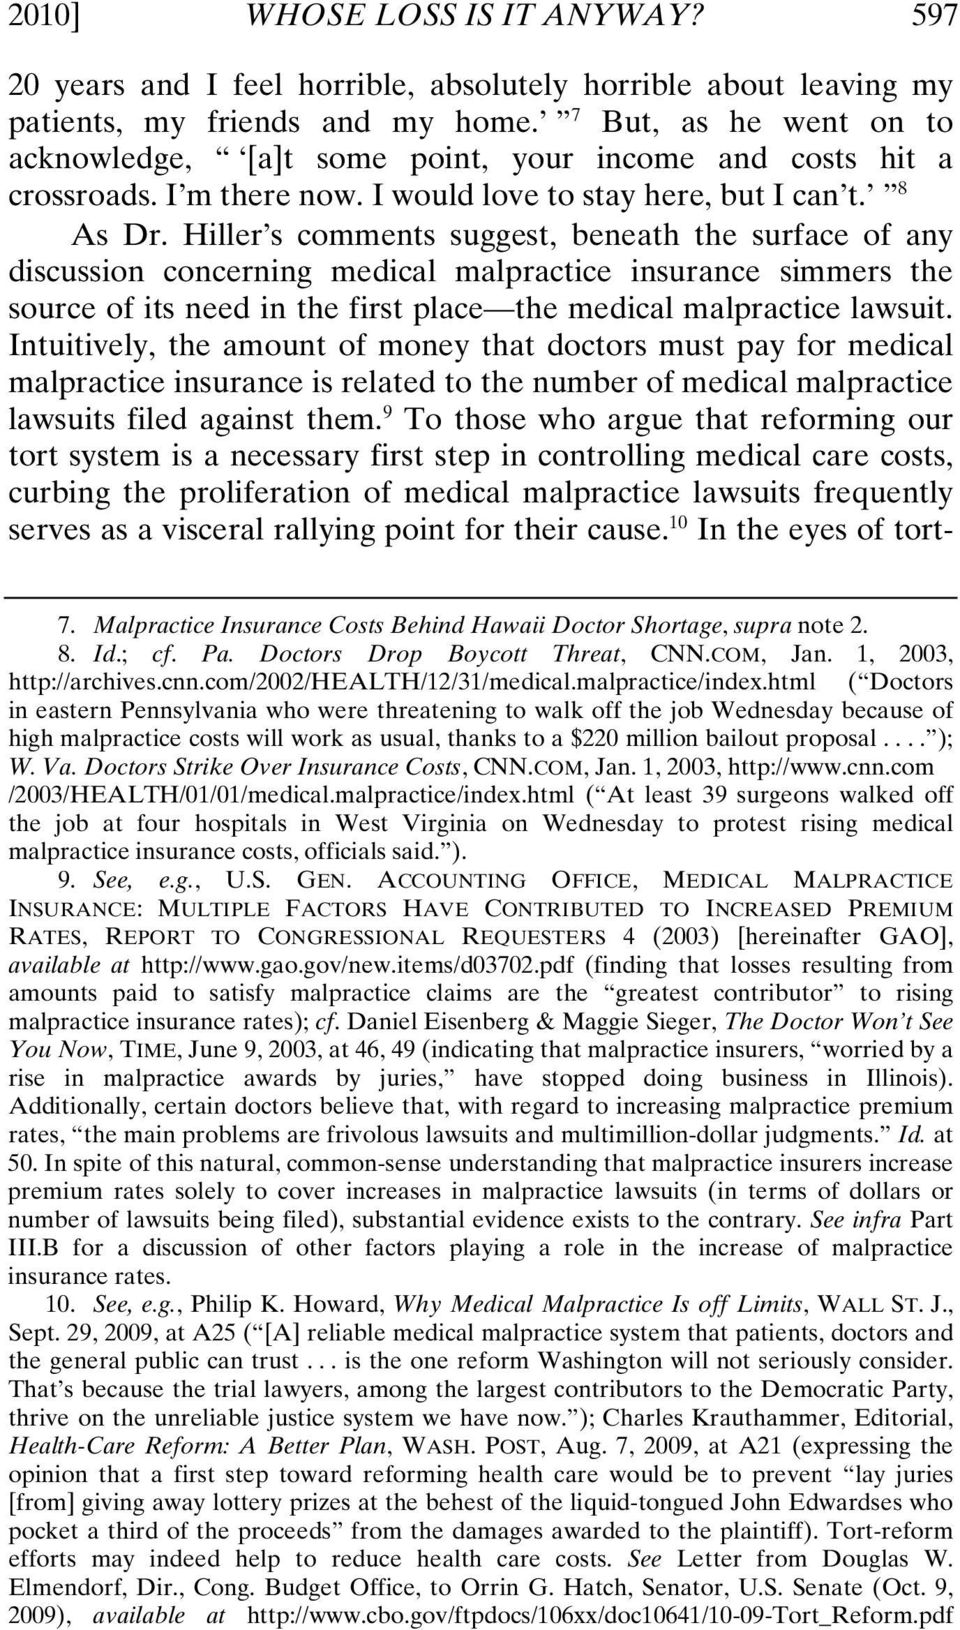 Hiller s comments suggest, beneath the surface of any discussion concerning medical malpractice insurance simmers the source of its need in the first place the medical malpractice lawsuit.